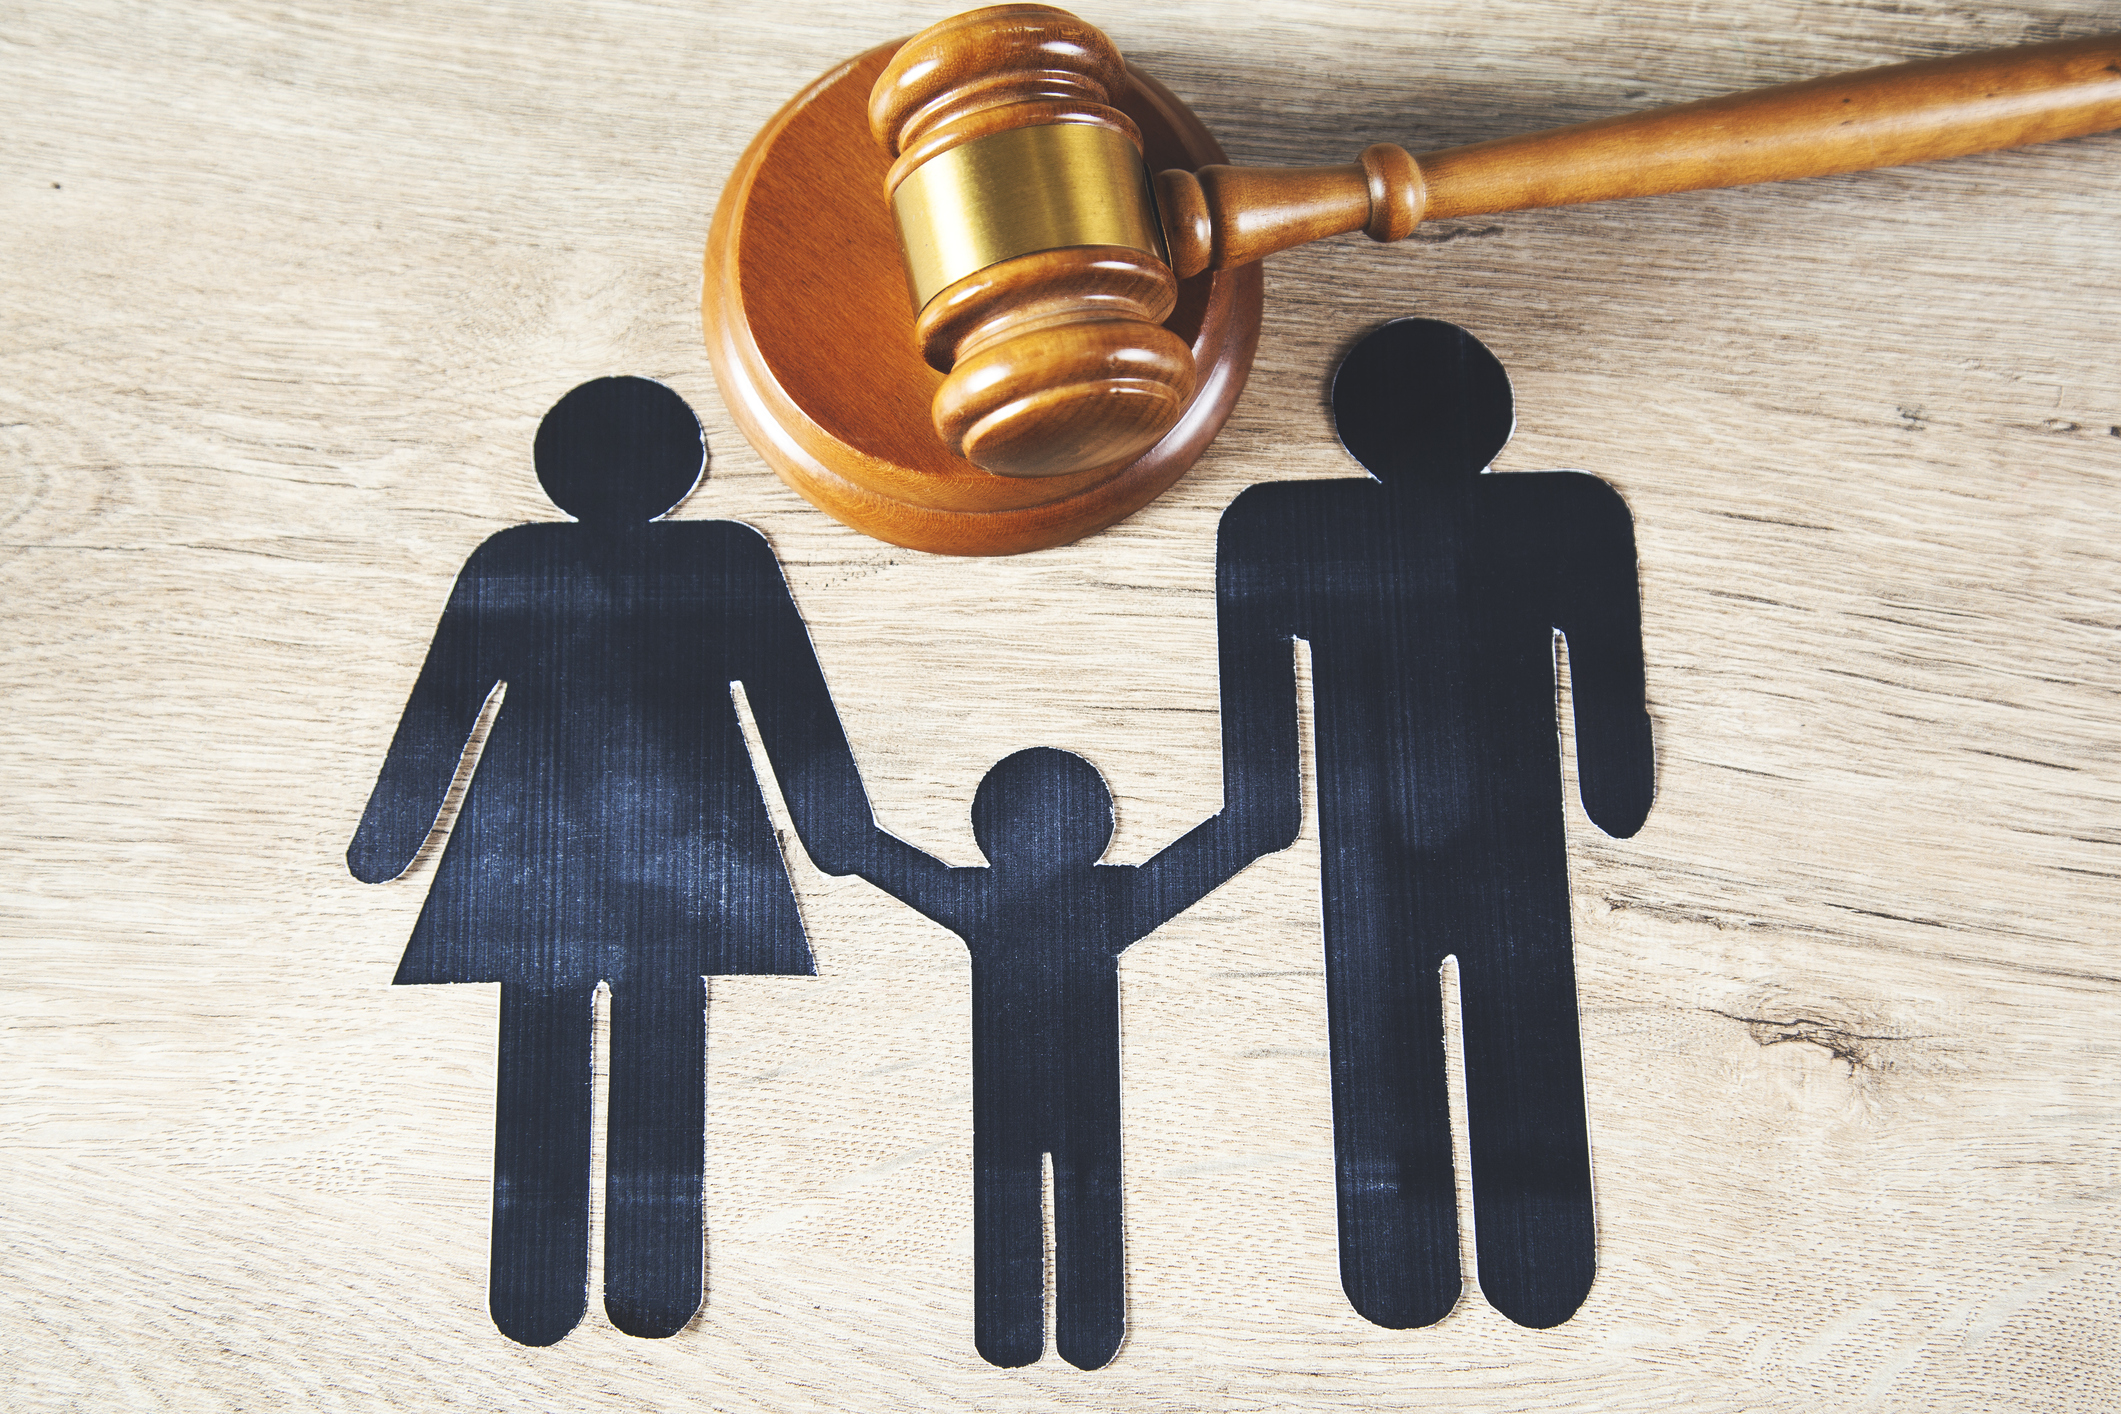 People Who Experienced Parental Divorce as Children Have Lower 'Love  Hormone' Levels than Those Who Did Not | Media and Public Relations |  Baylor University